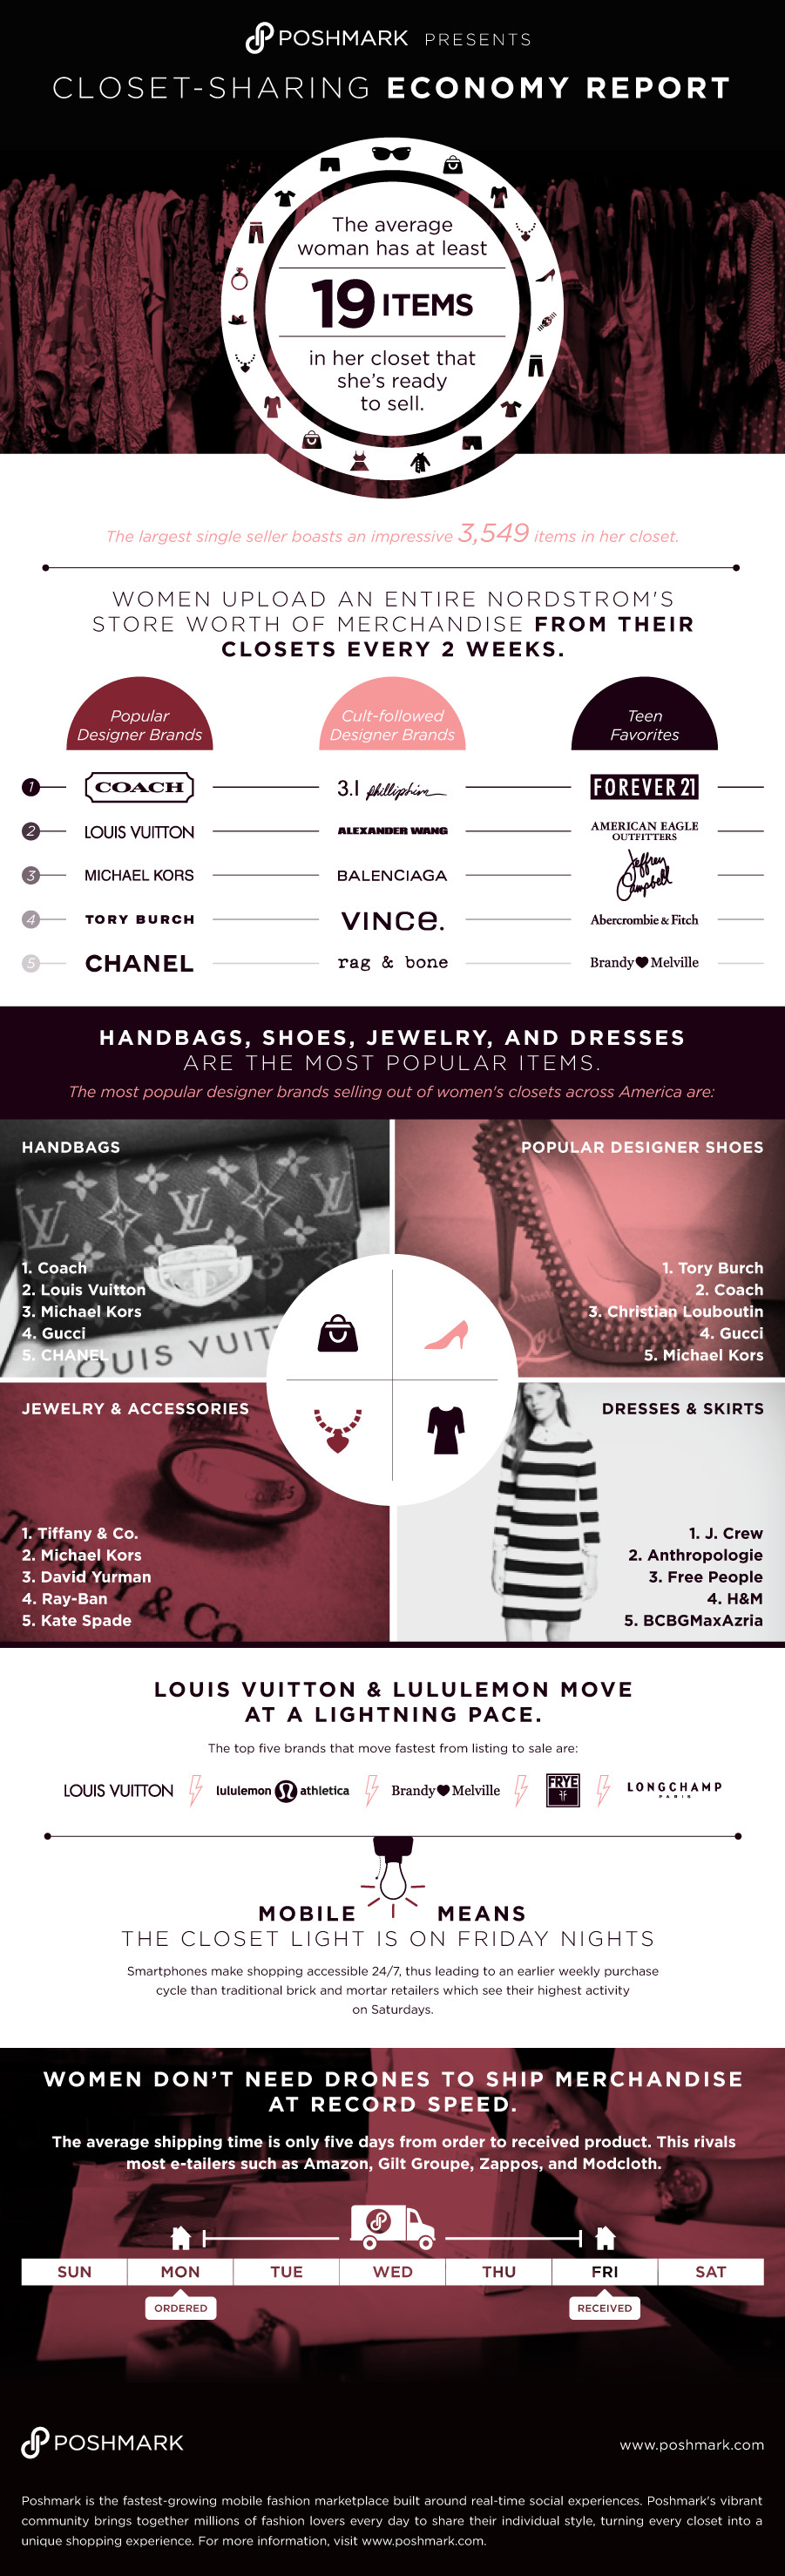 d75dc67d712 Louis Vuitton and Lululemon Sell Fastest on Poshmark - Racked SF